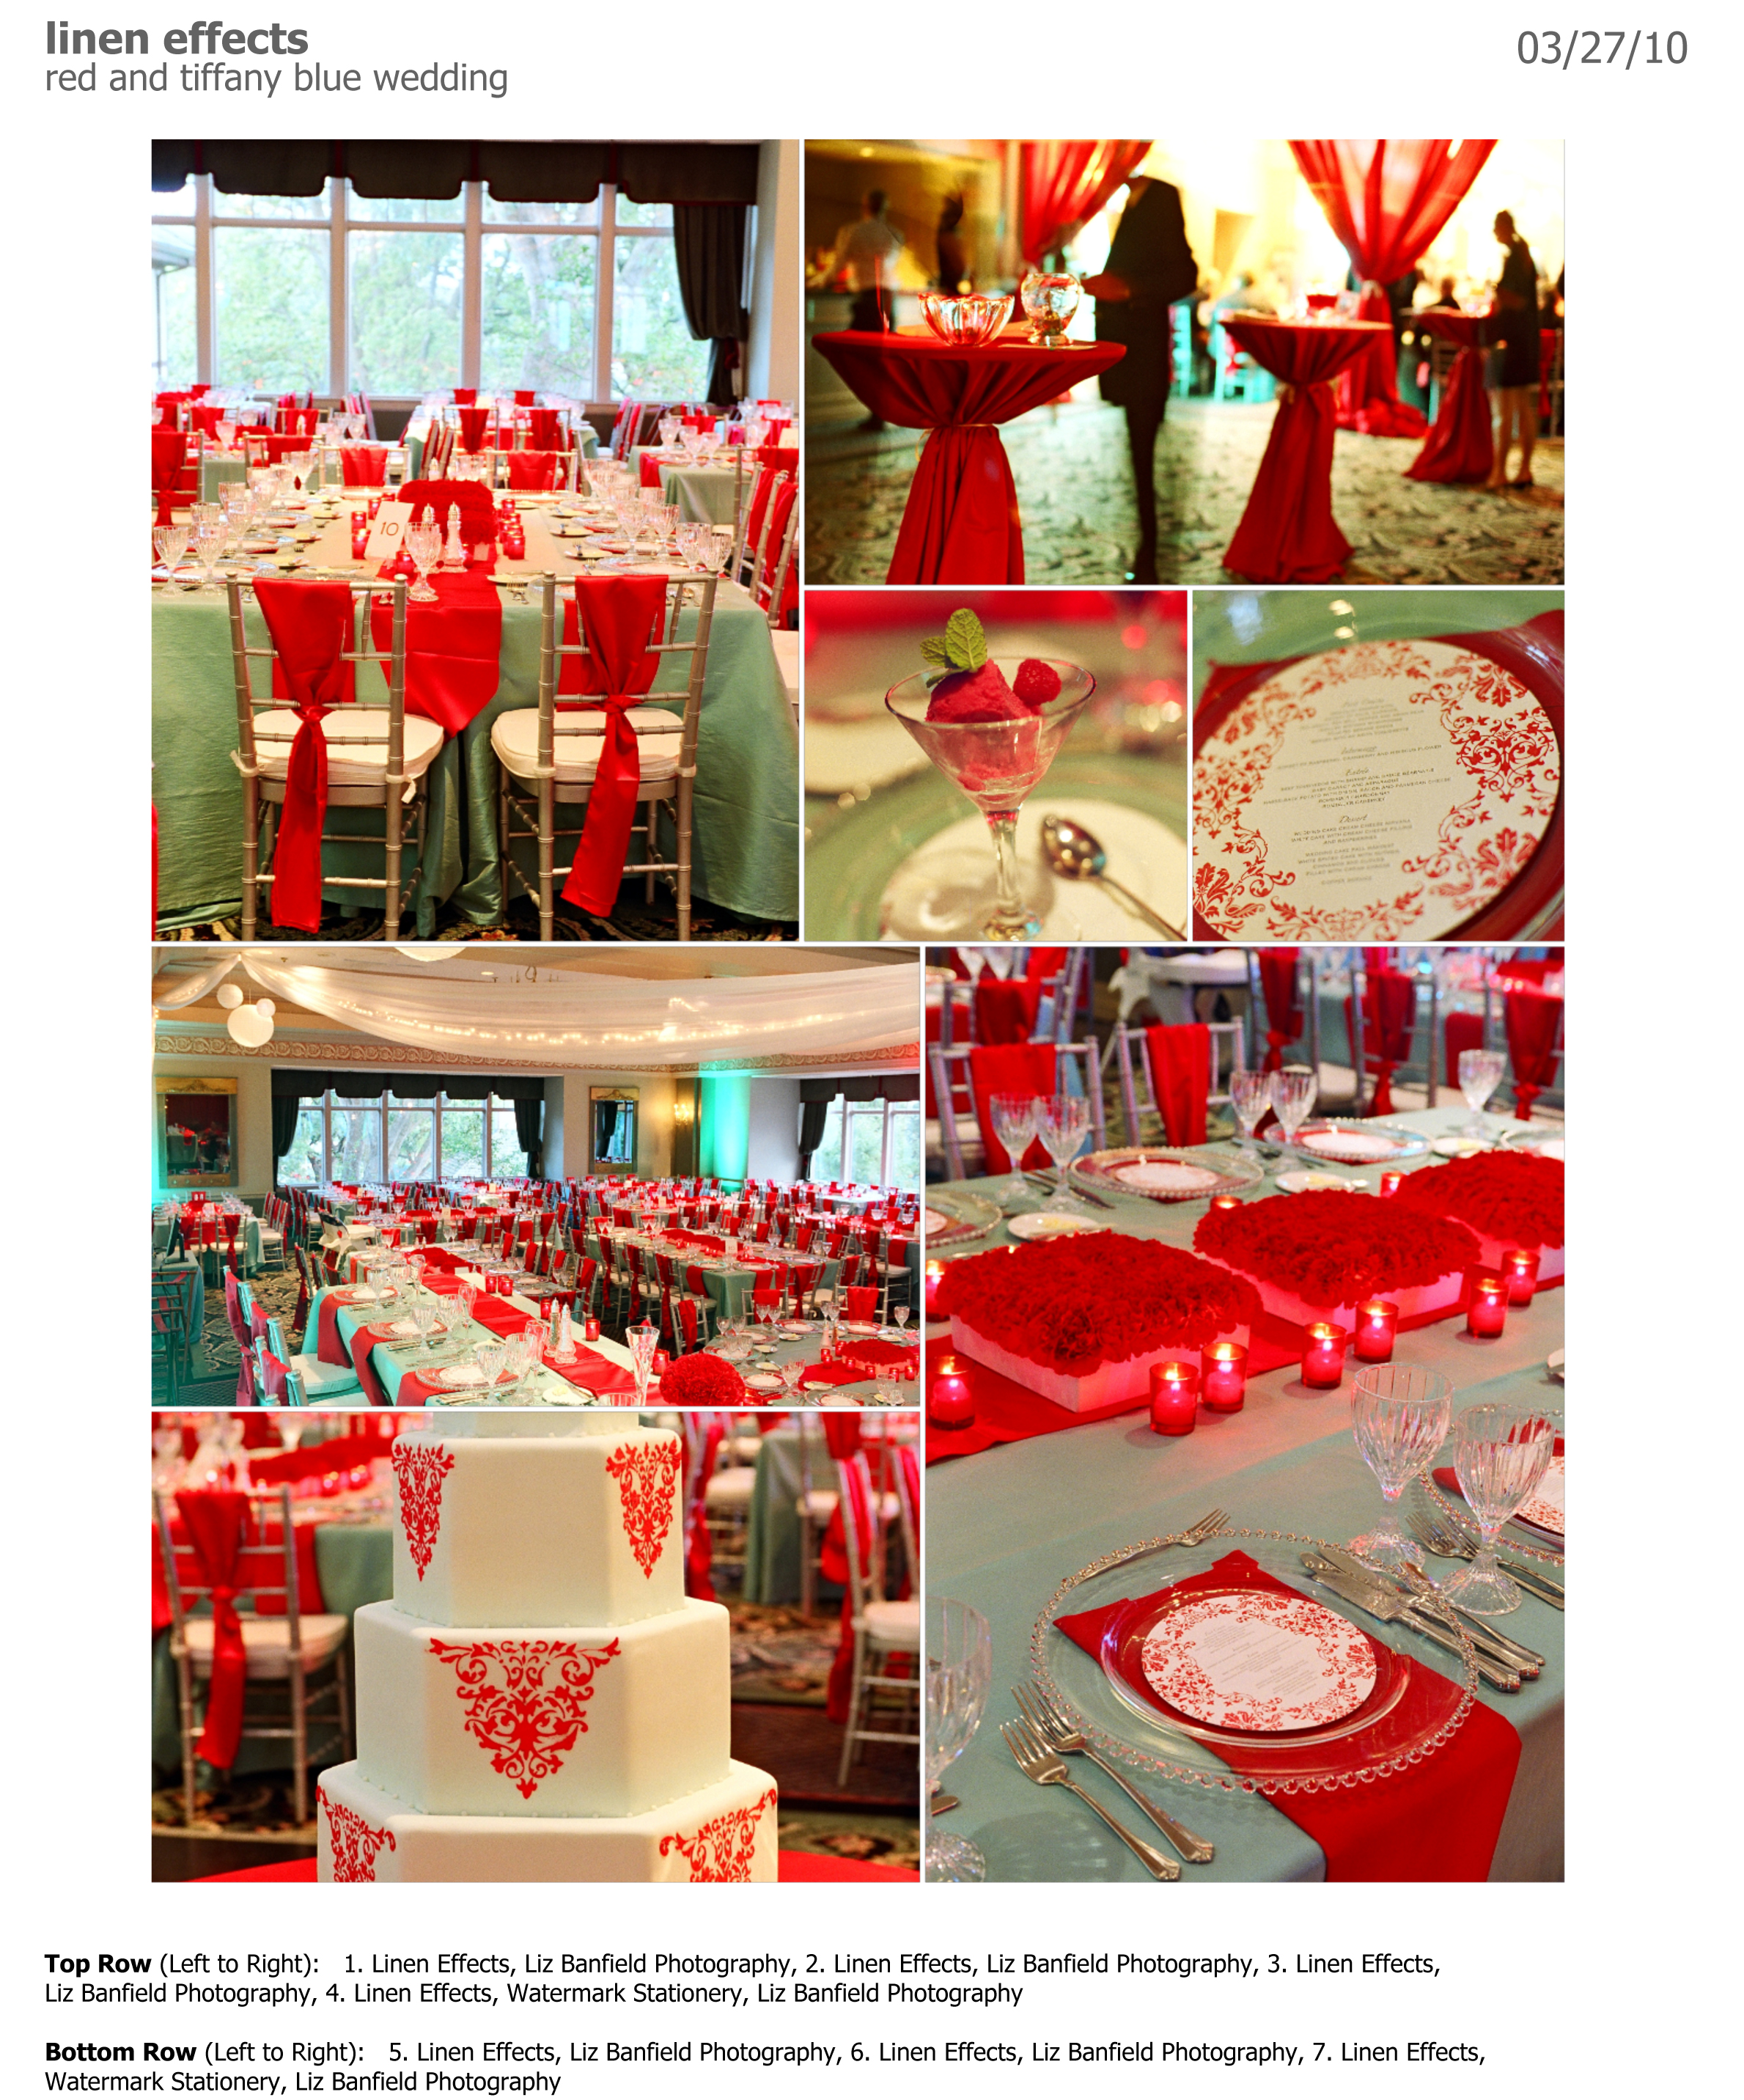 Linen Effects Red and Tiffany Blue Wedding Style Board